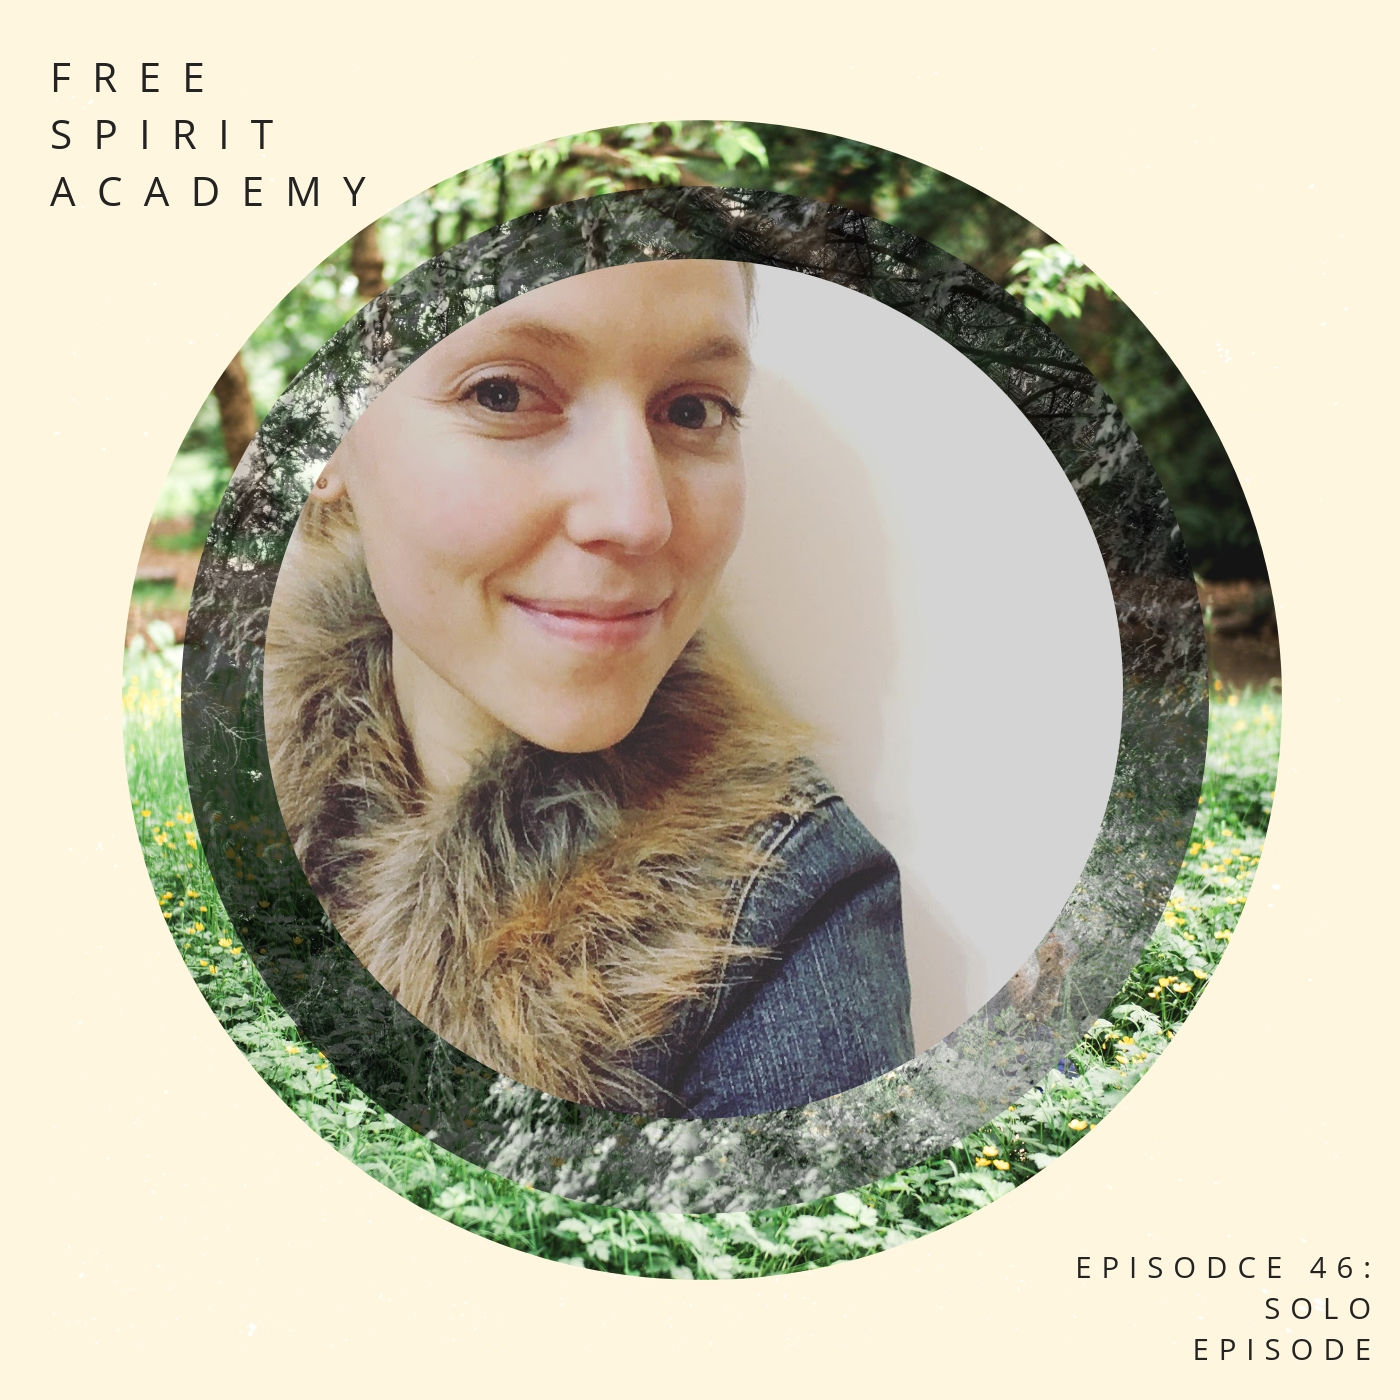 46 | Solo Episode | What Does It Mean To Be A Free Spirit?